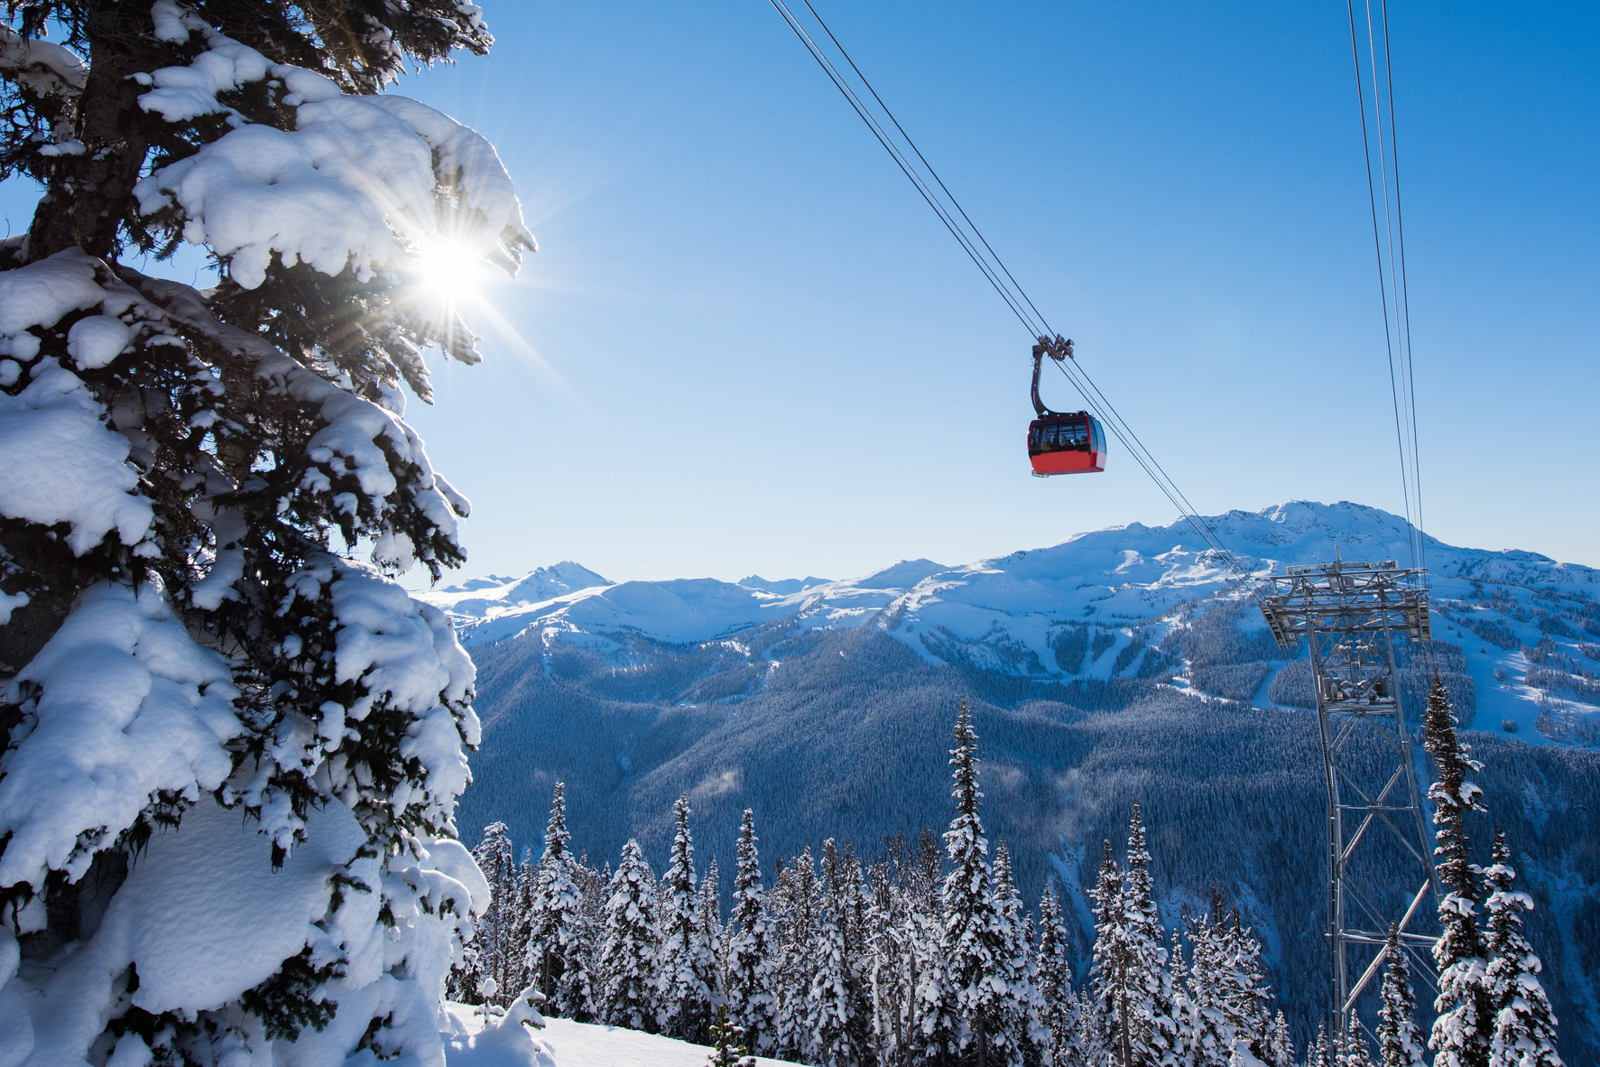 The Peak to Peak Gondola at the Whistler Blackcomb Resort. (Photo by stockstudioX/Getty Images)